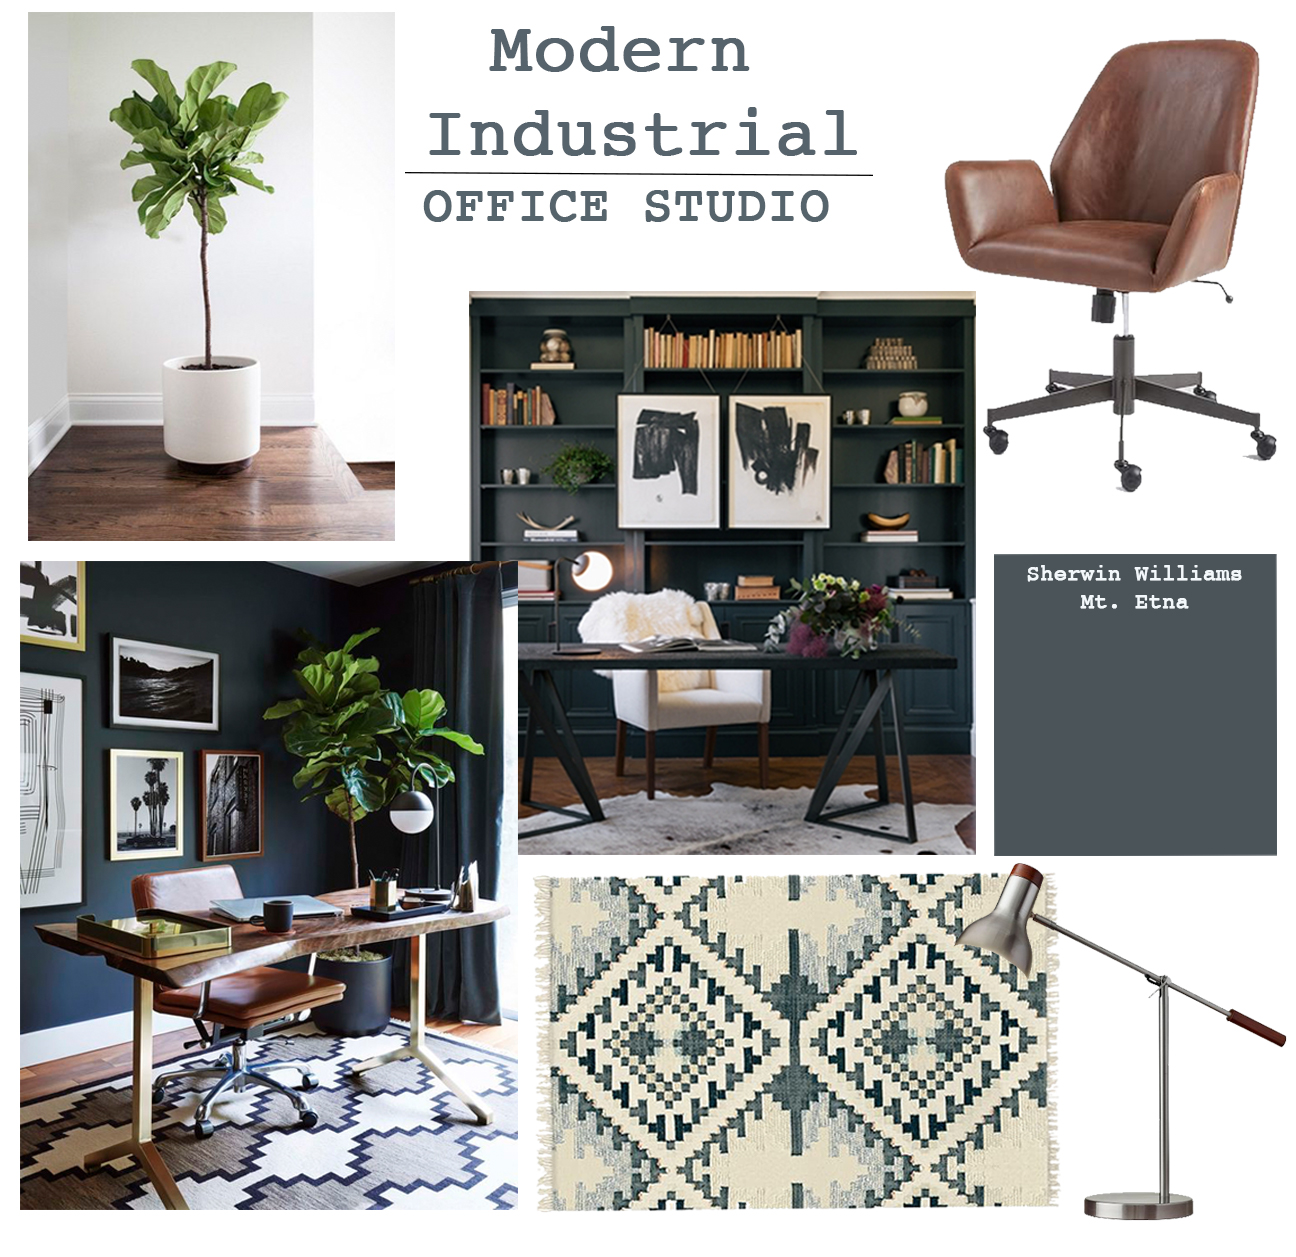 Studio office design modern industrial tuft trim for Office design instagram